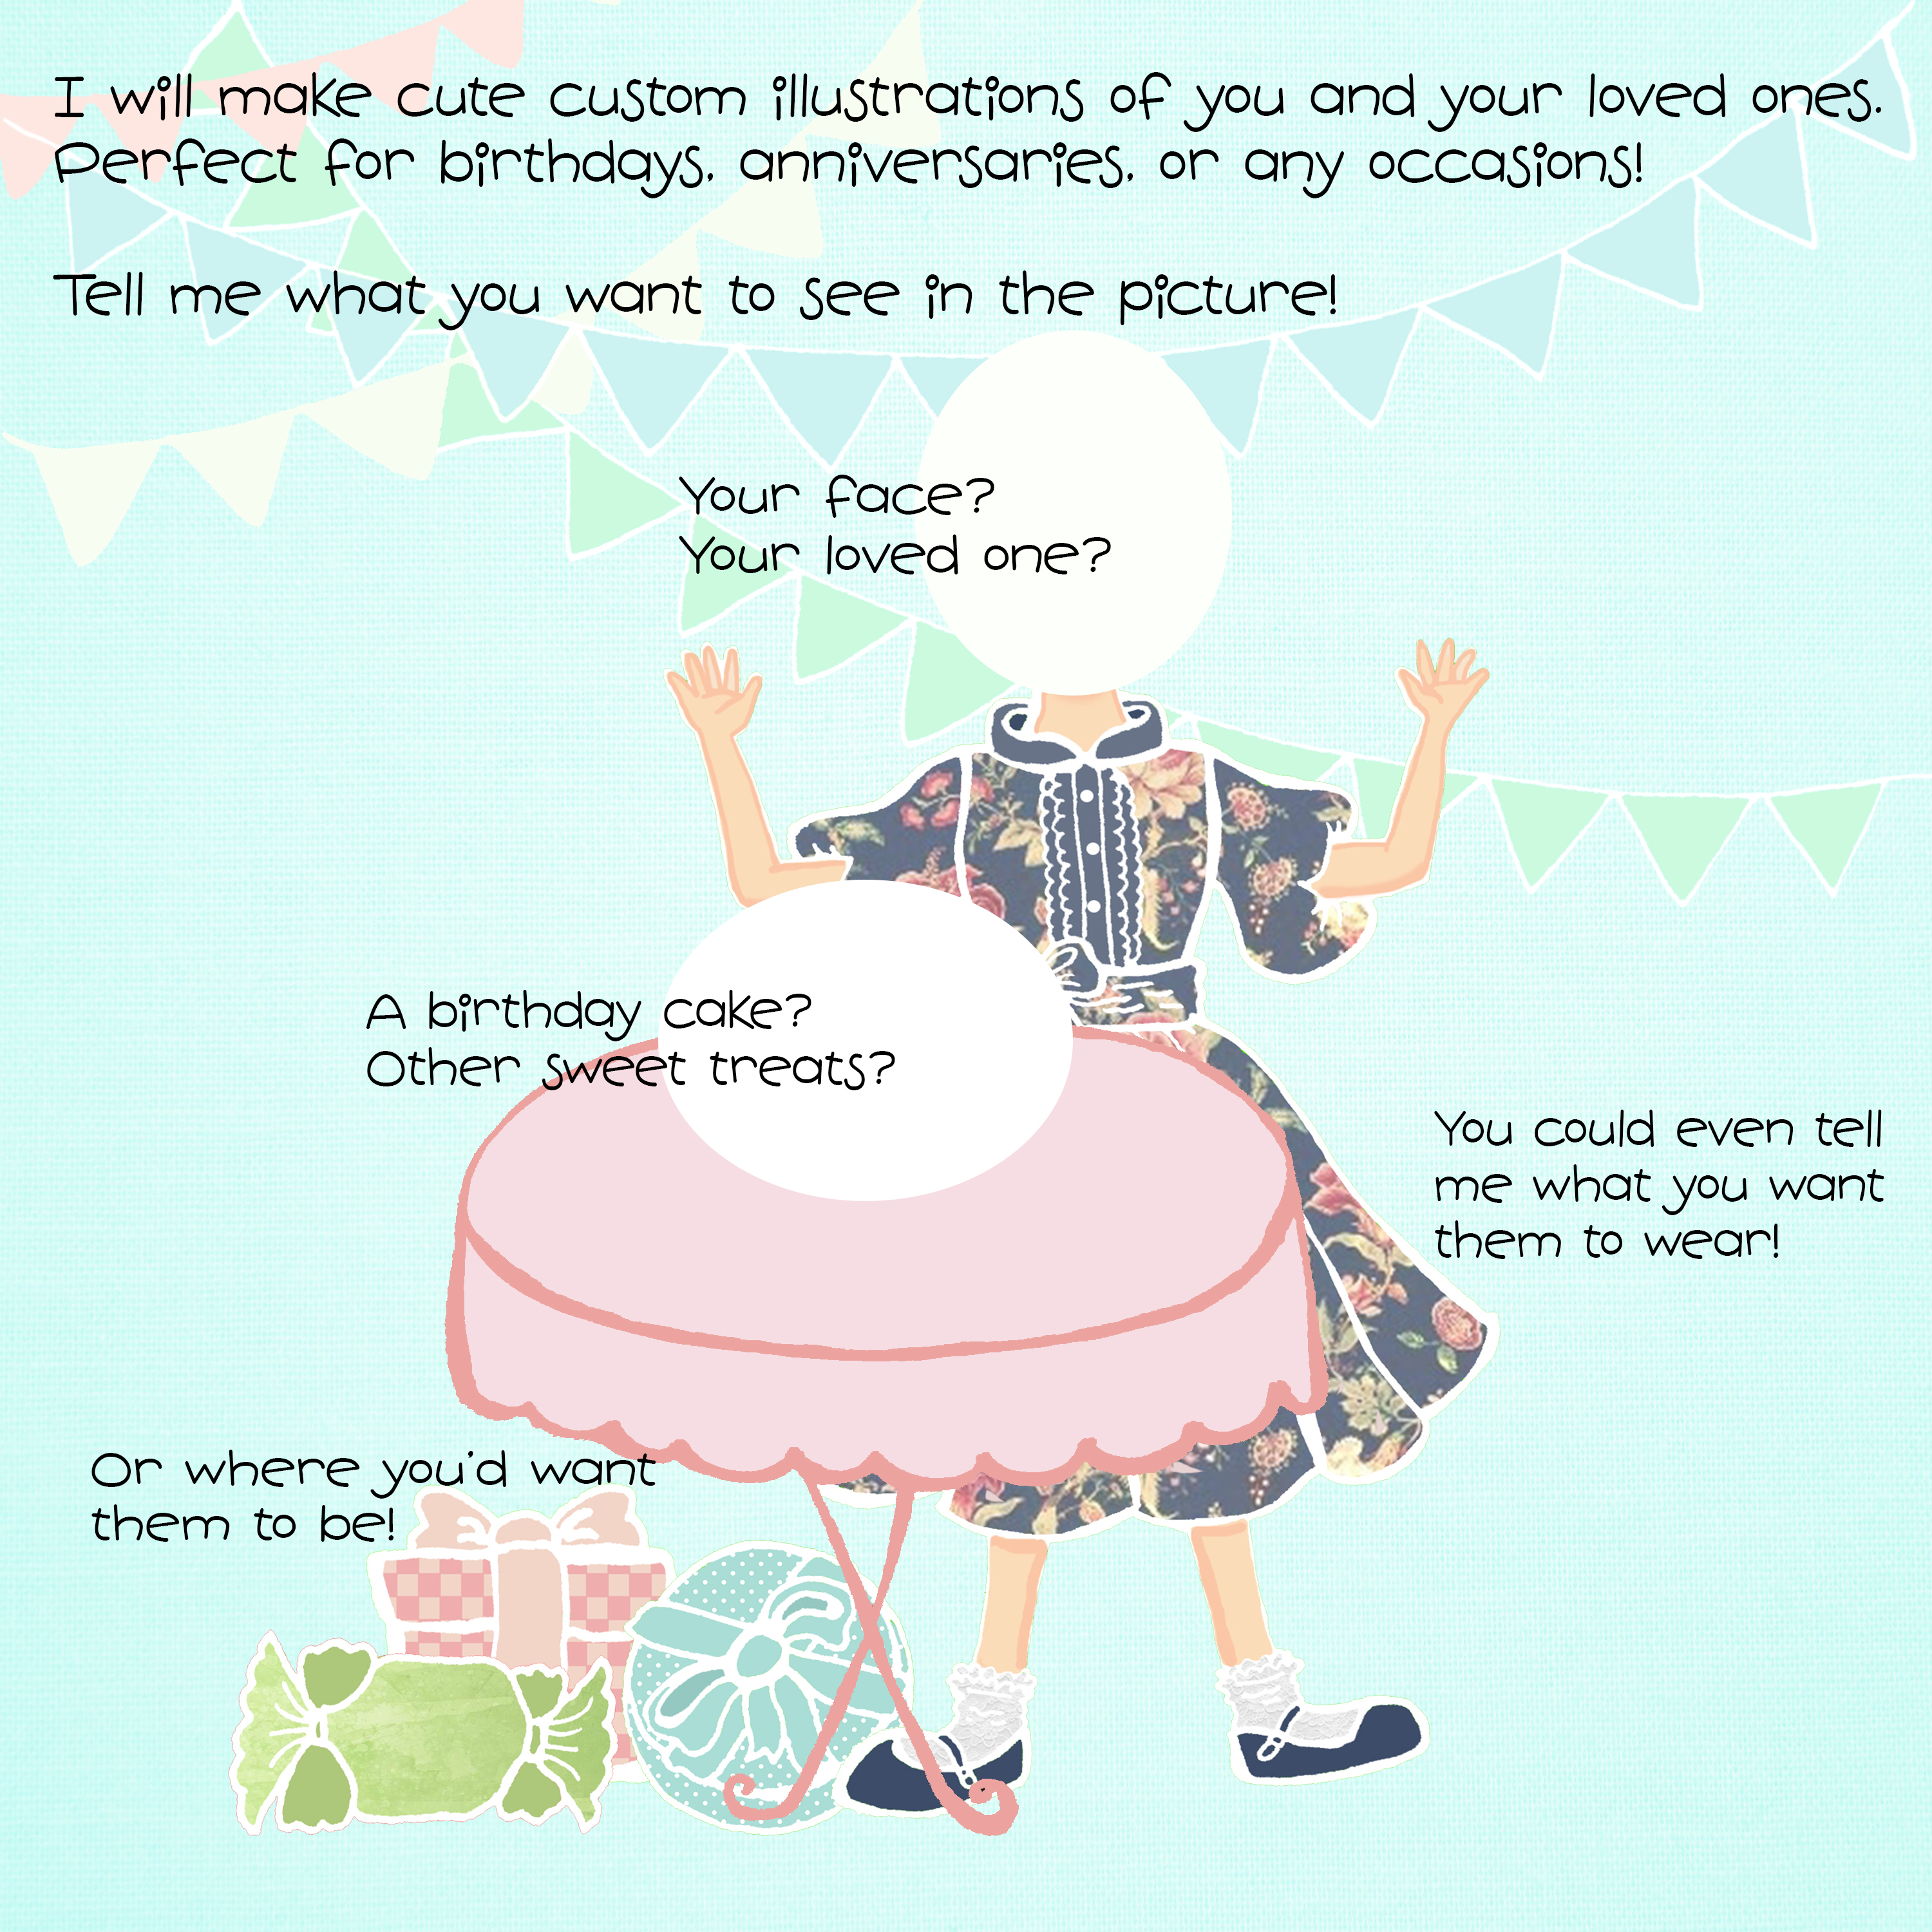 do custom illustration of you in a children's book style